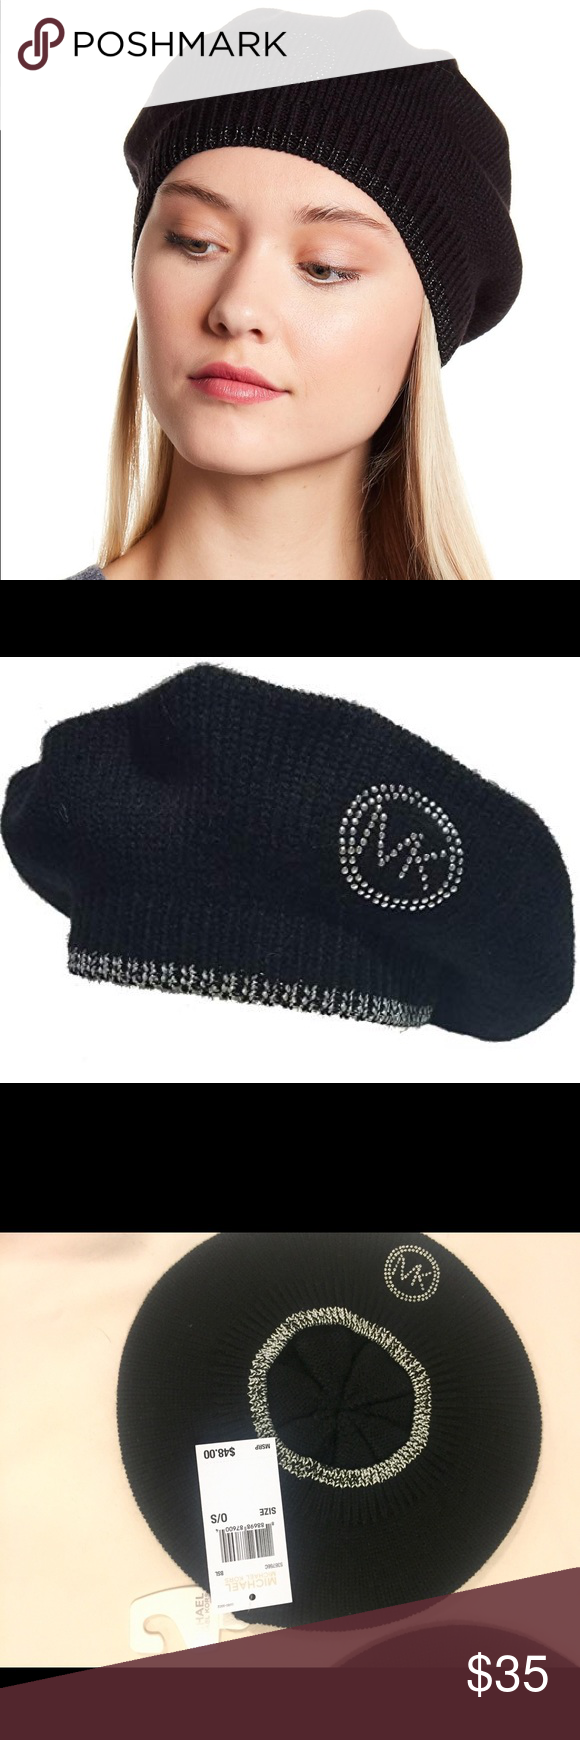 be6064295bb7f MK Logo Studded Beret Black Silver Hat brand new with tag